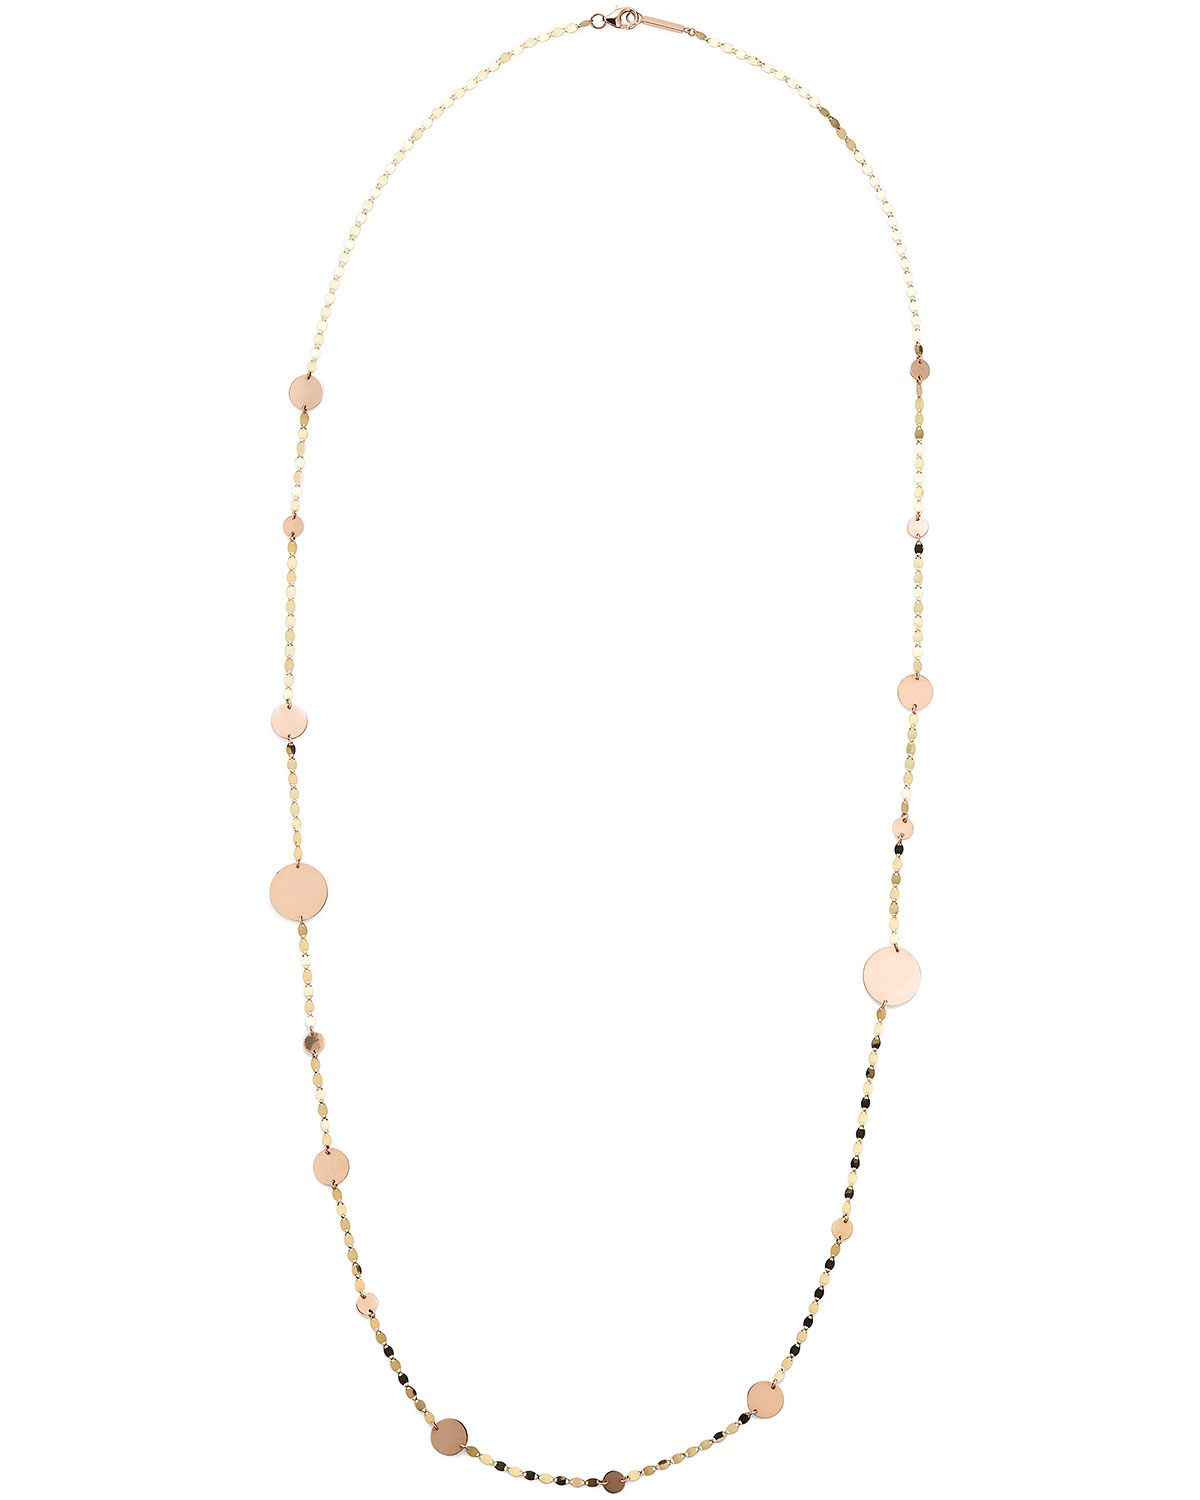 Lana 14K GOLD CLEO LONG DISC NECKLACE